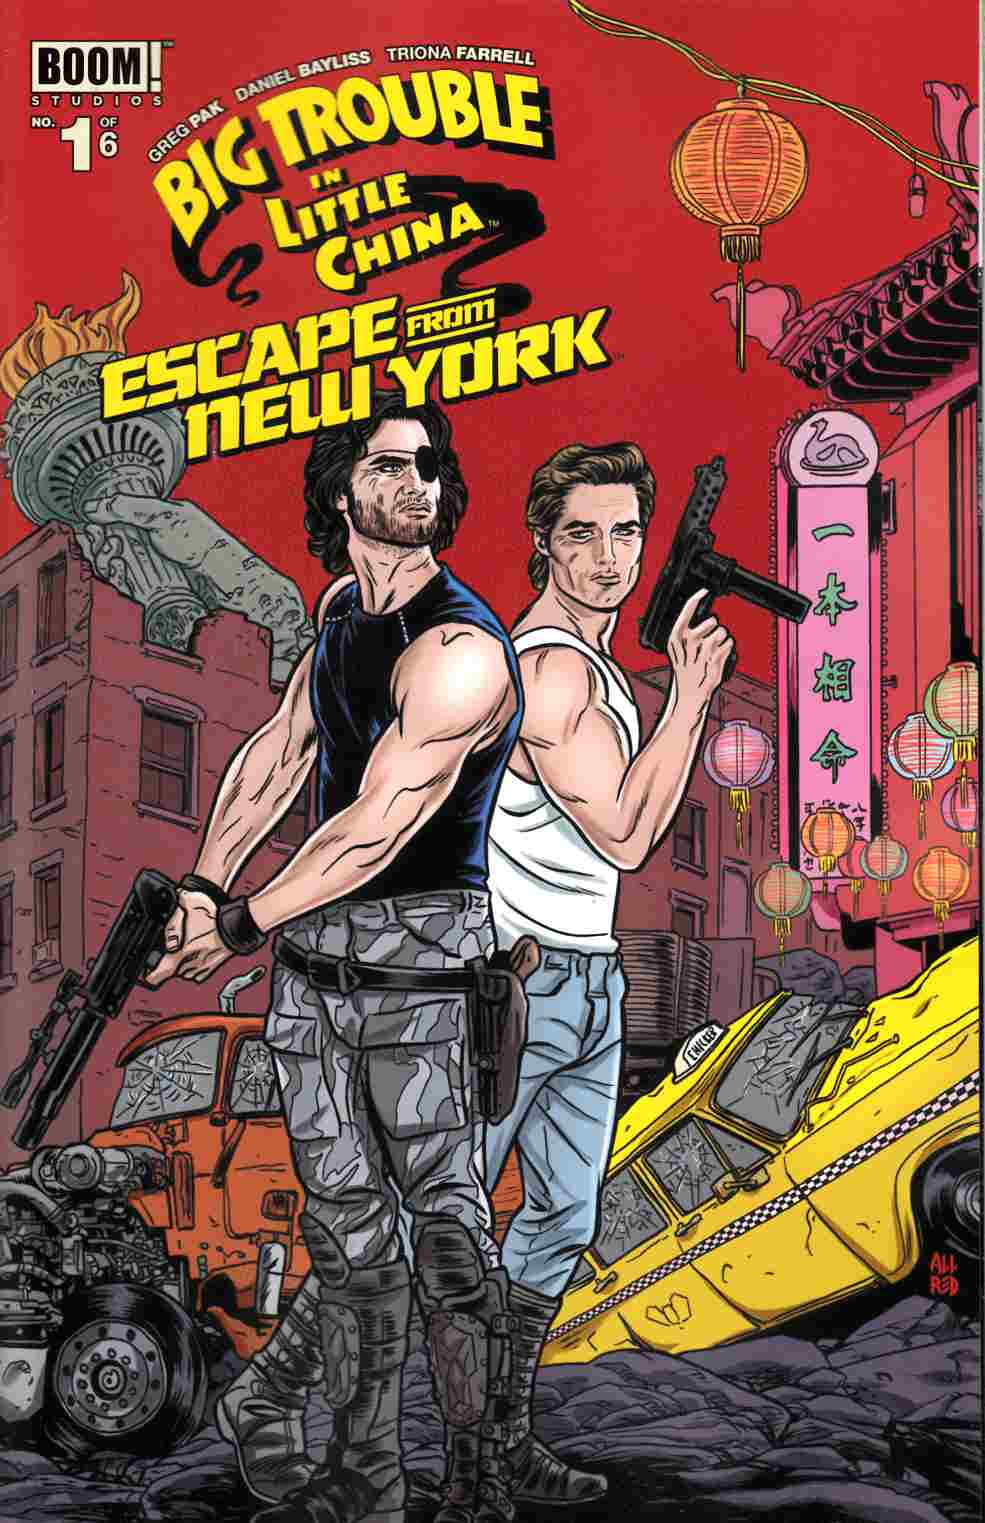 Big Trouble In Little China Escape From New York #1 Subscription Cover [Boom Comic]